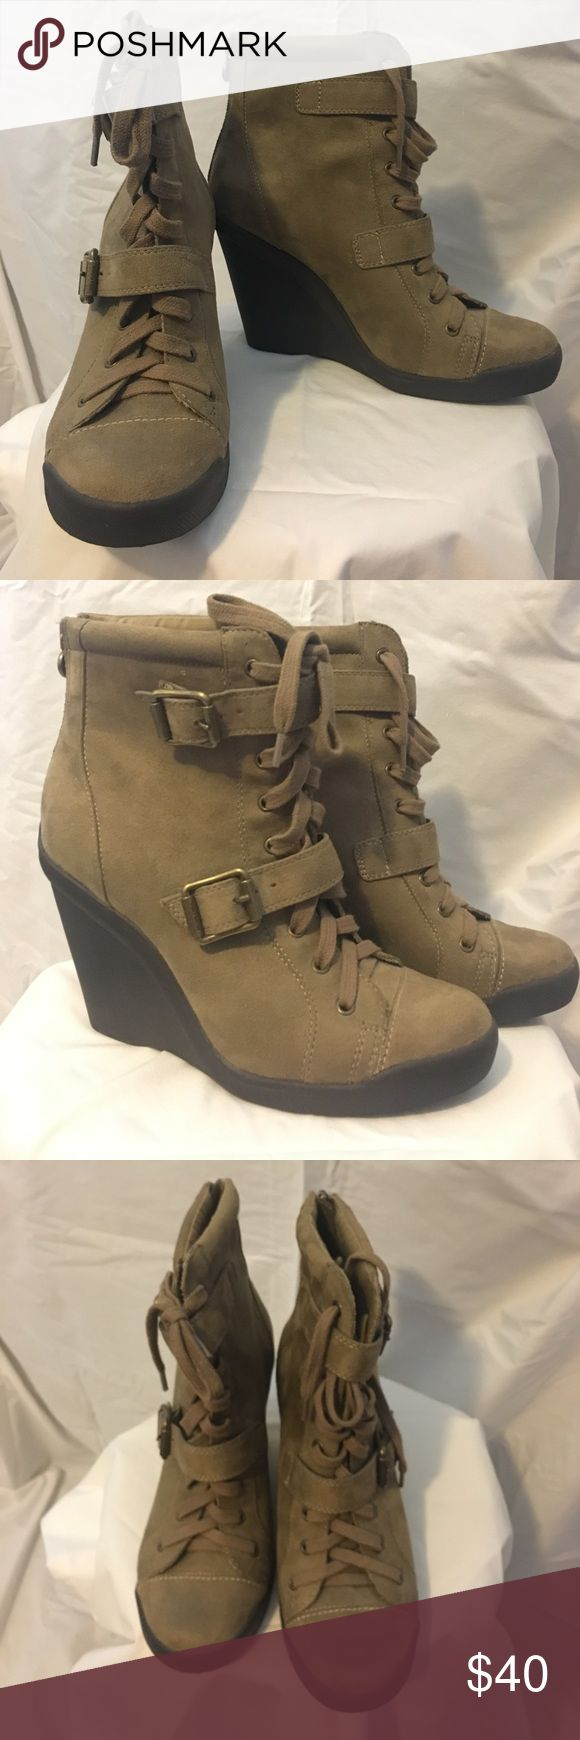 Simply Vera Vera Wang Wedge Booties NWOT, Simply Vera Vera Wang by Kohls faux suede sneaker wedge ankle booties. Simply Vera Vera Wang Shoes Ankle Boots & Booties